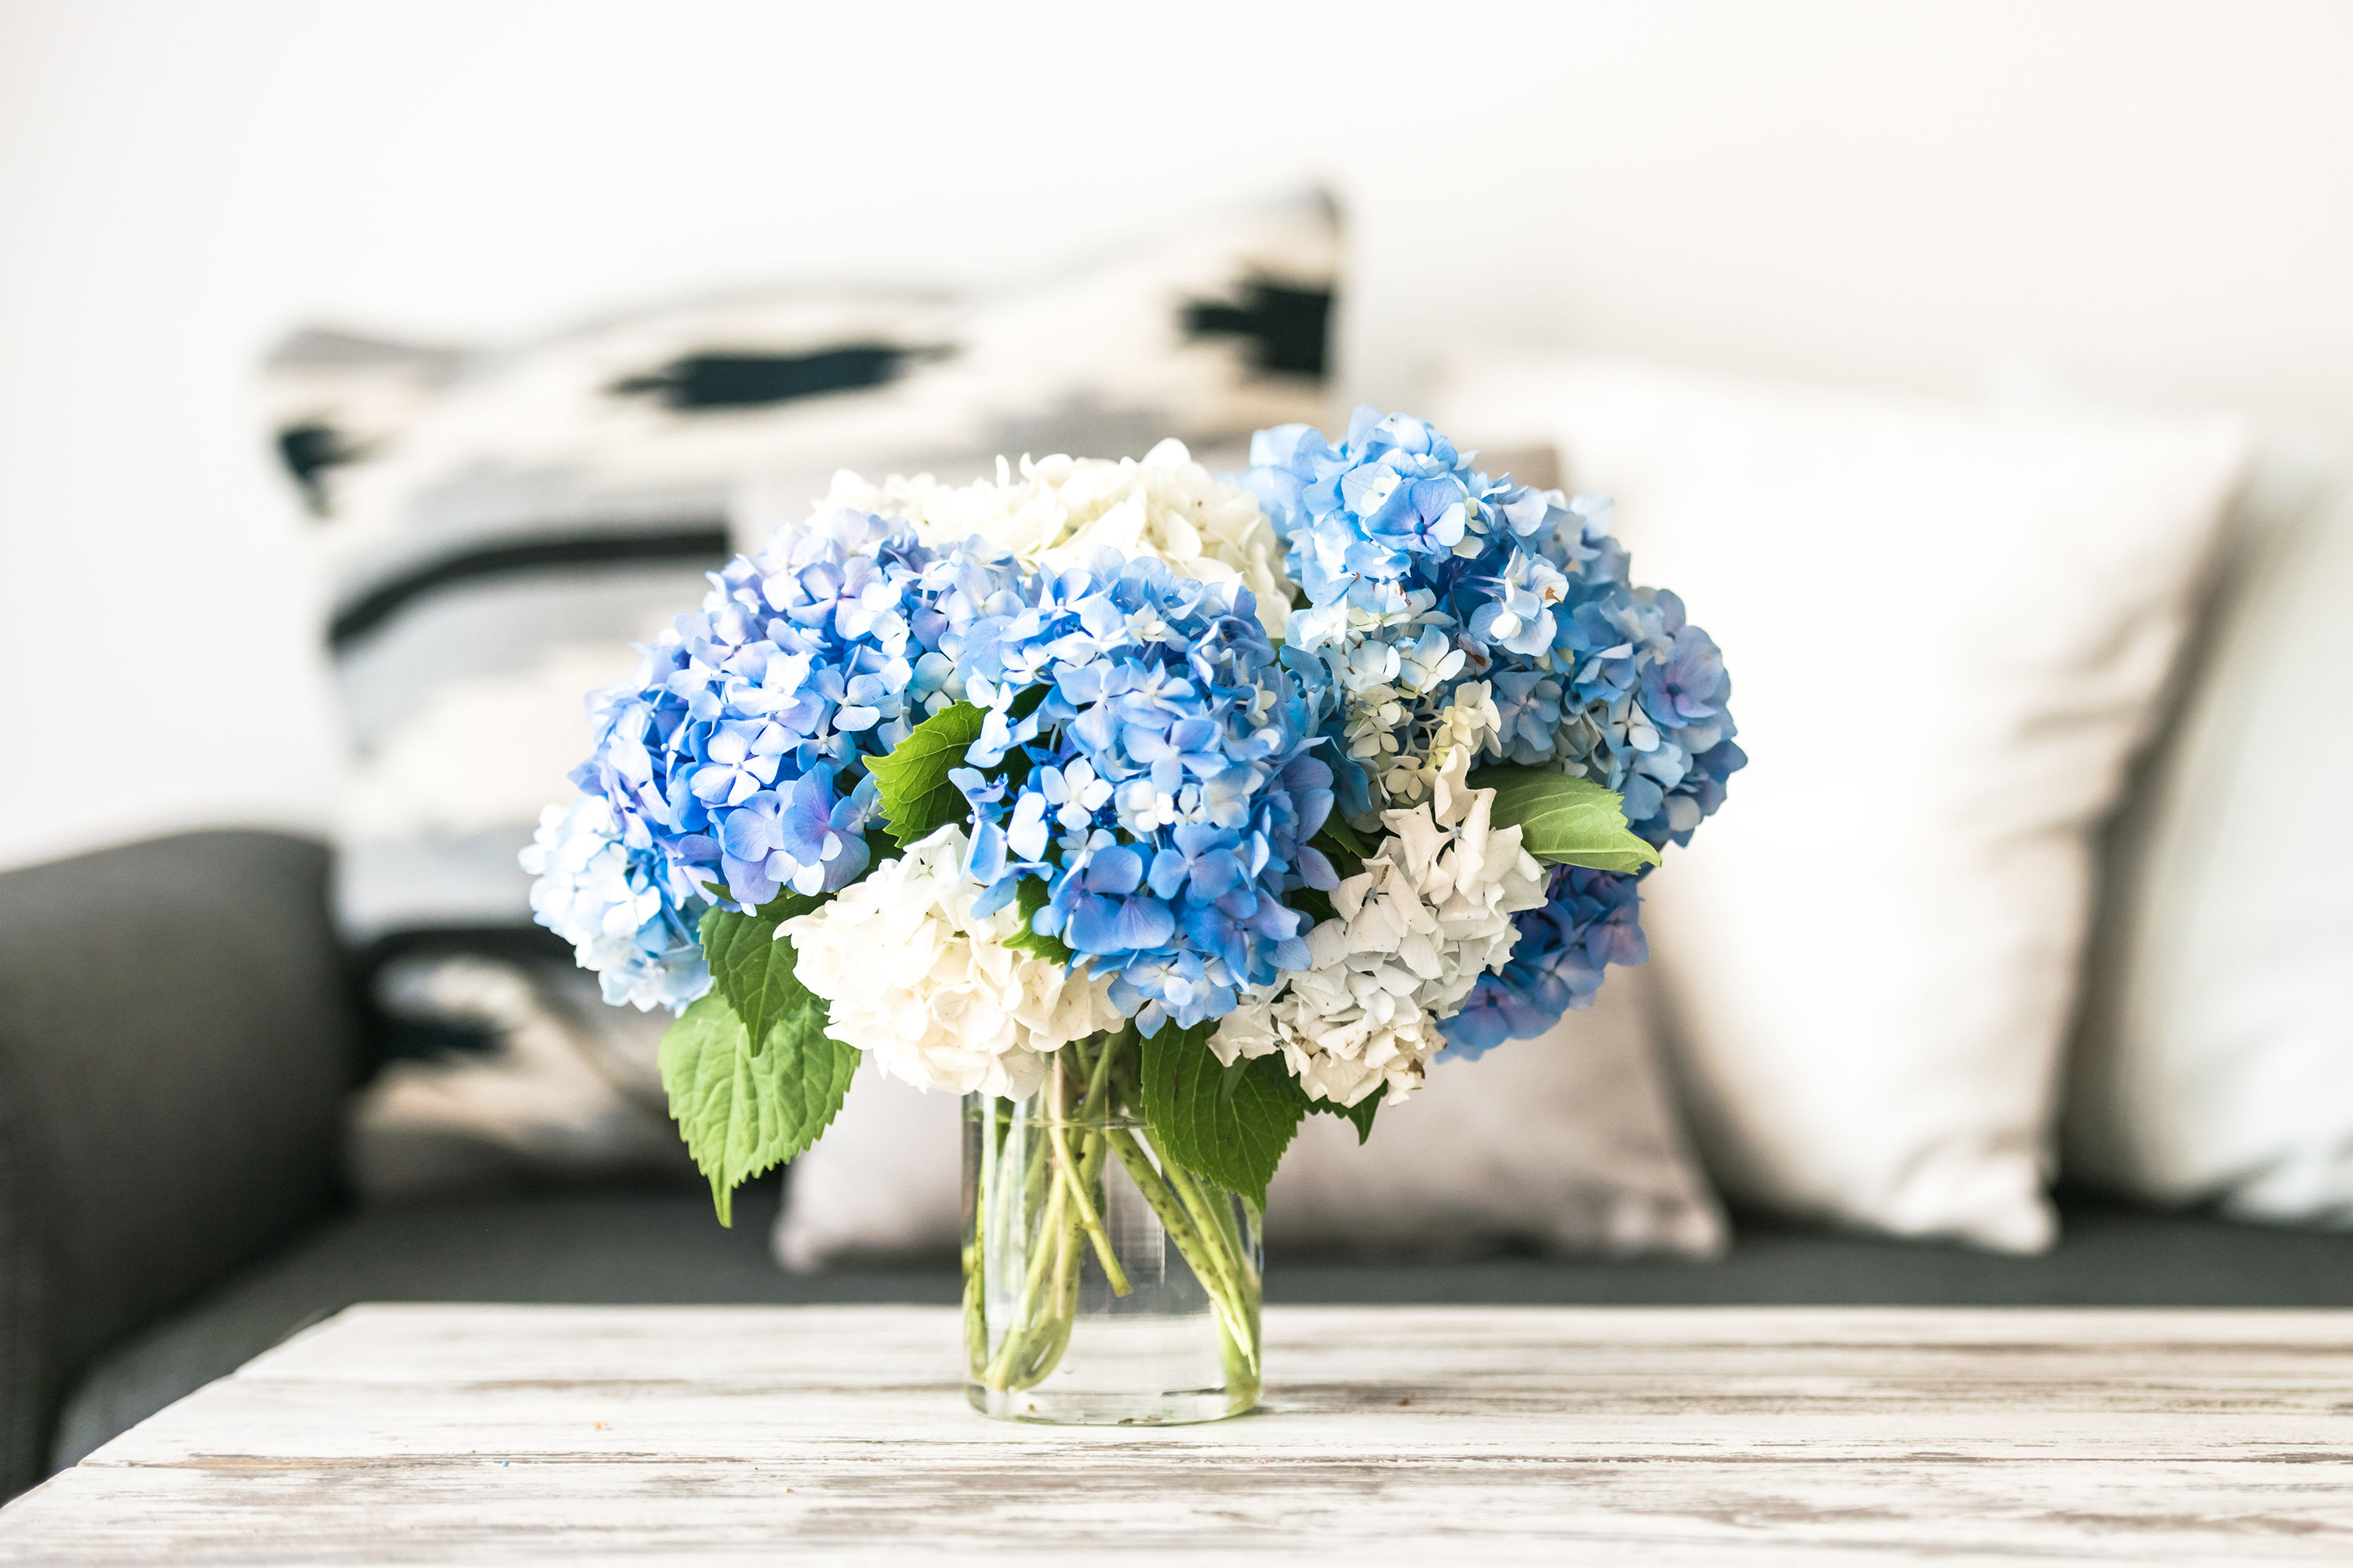 Having fresh flowers in your home can help ease your anxiety, according to science